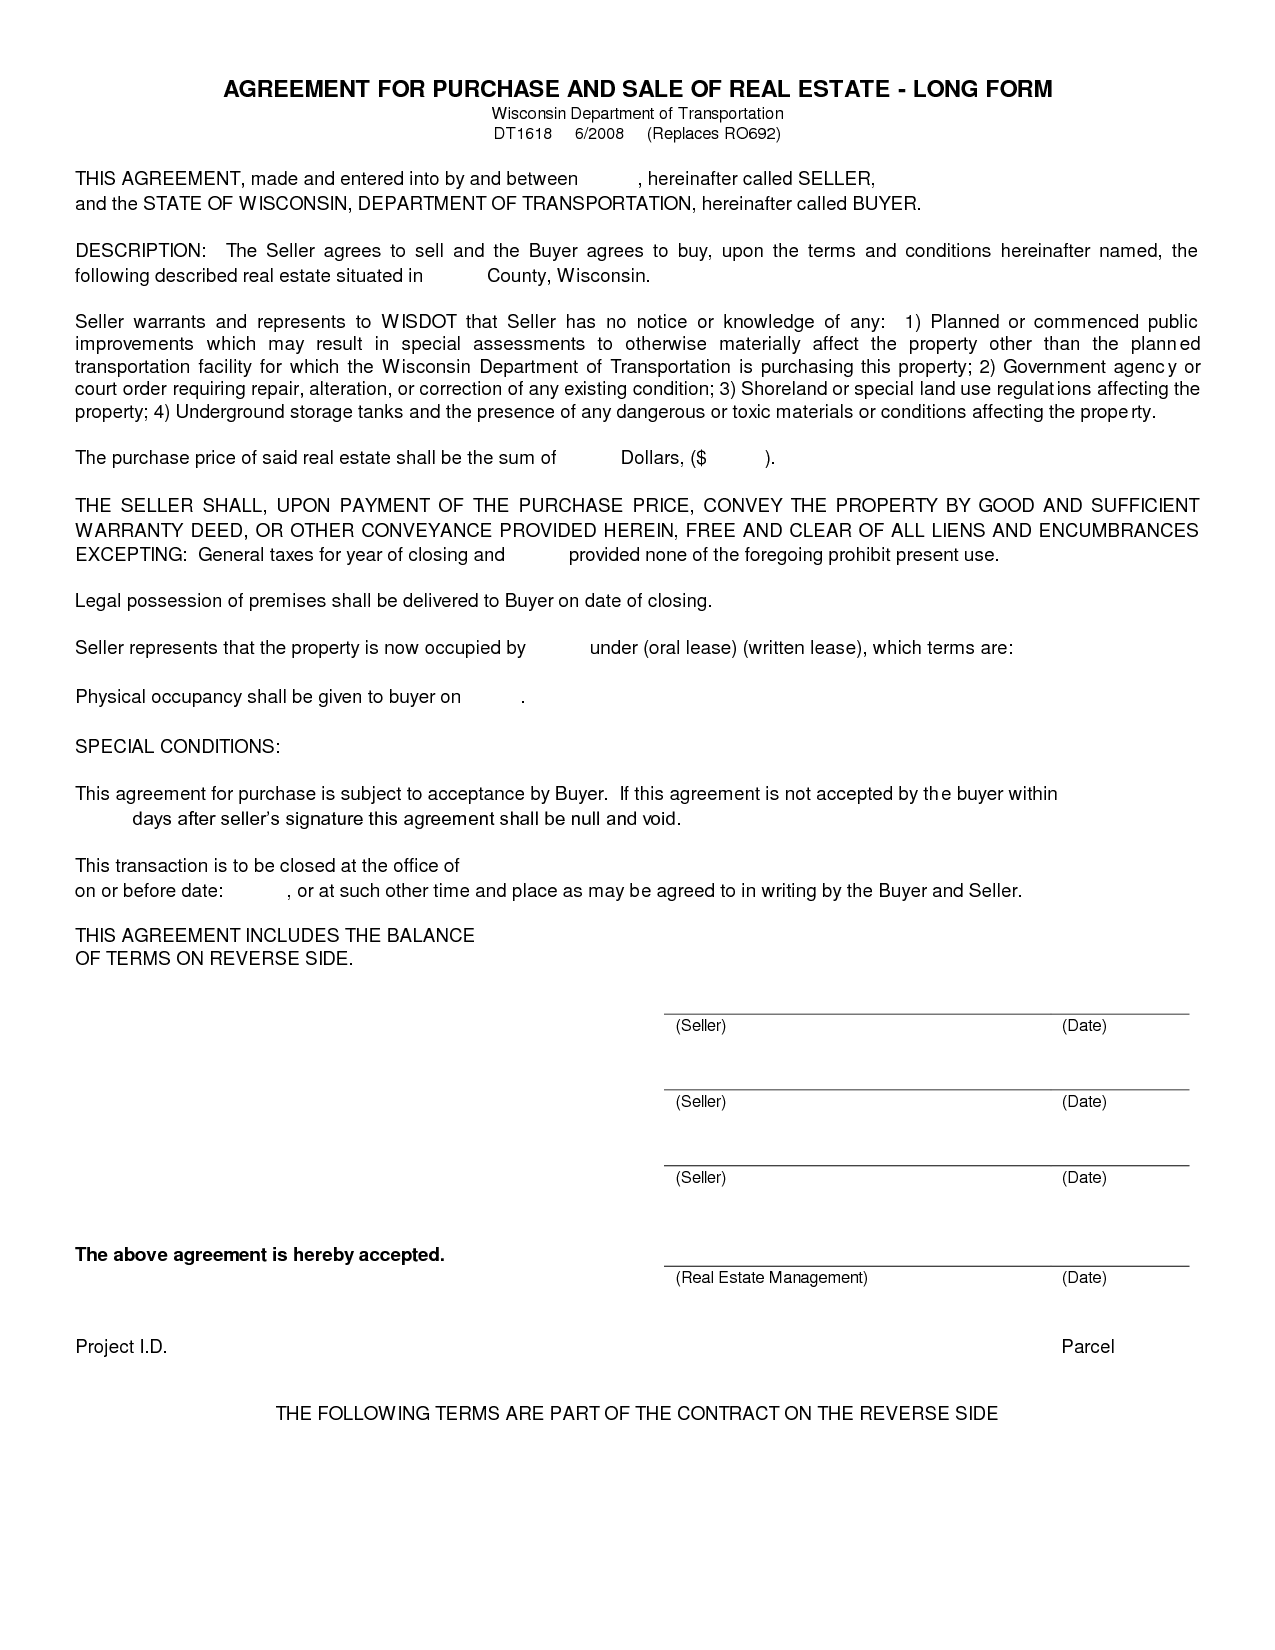 Free Blank Purchase Agreement Form Images   Agreement To Purchase Real  Estate Form Free  Purchasing Contract Template